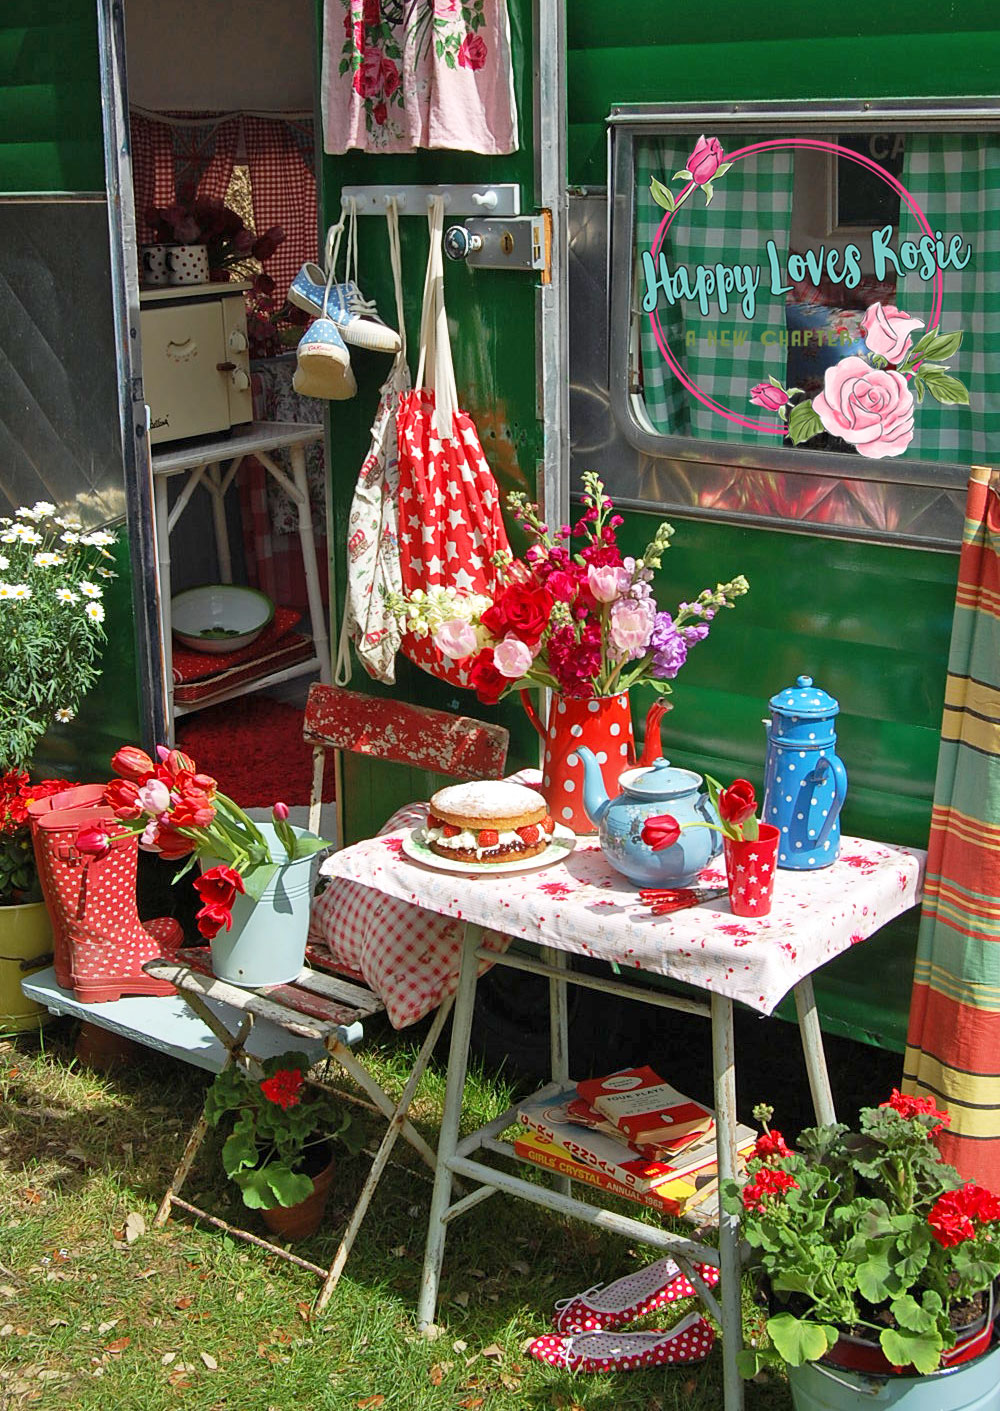 happy loves rosie's vintage green caravan